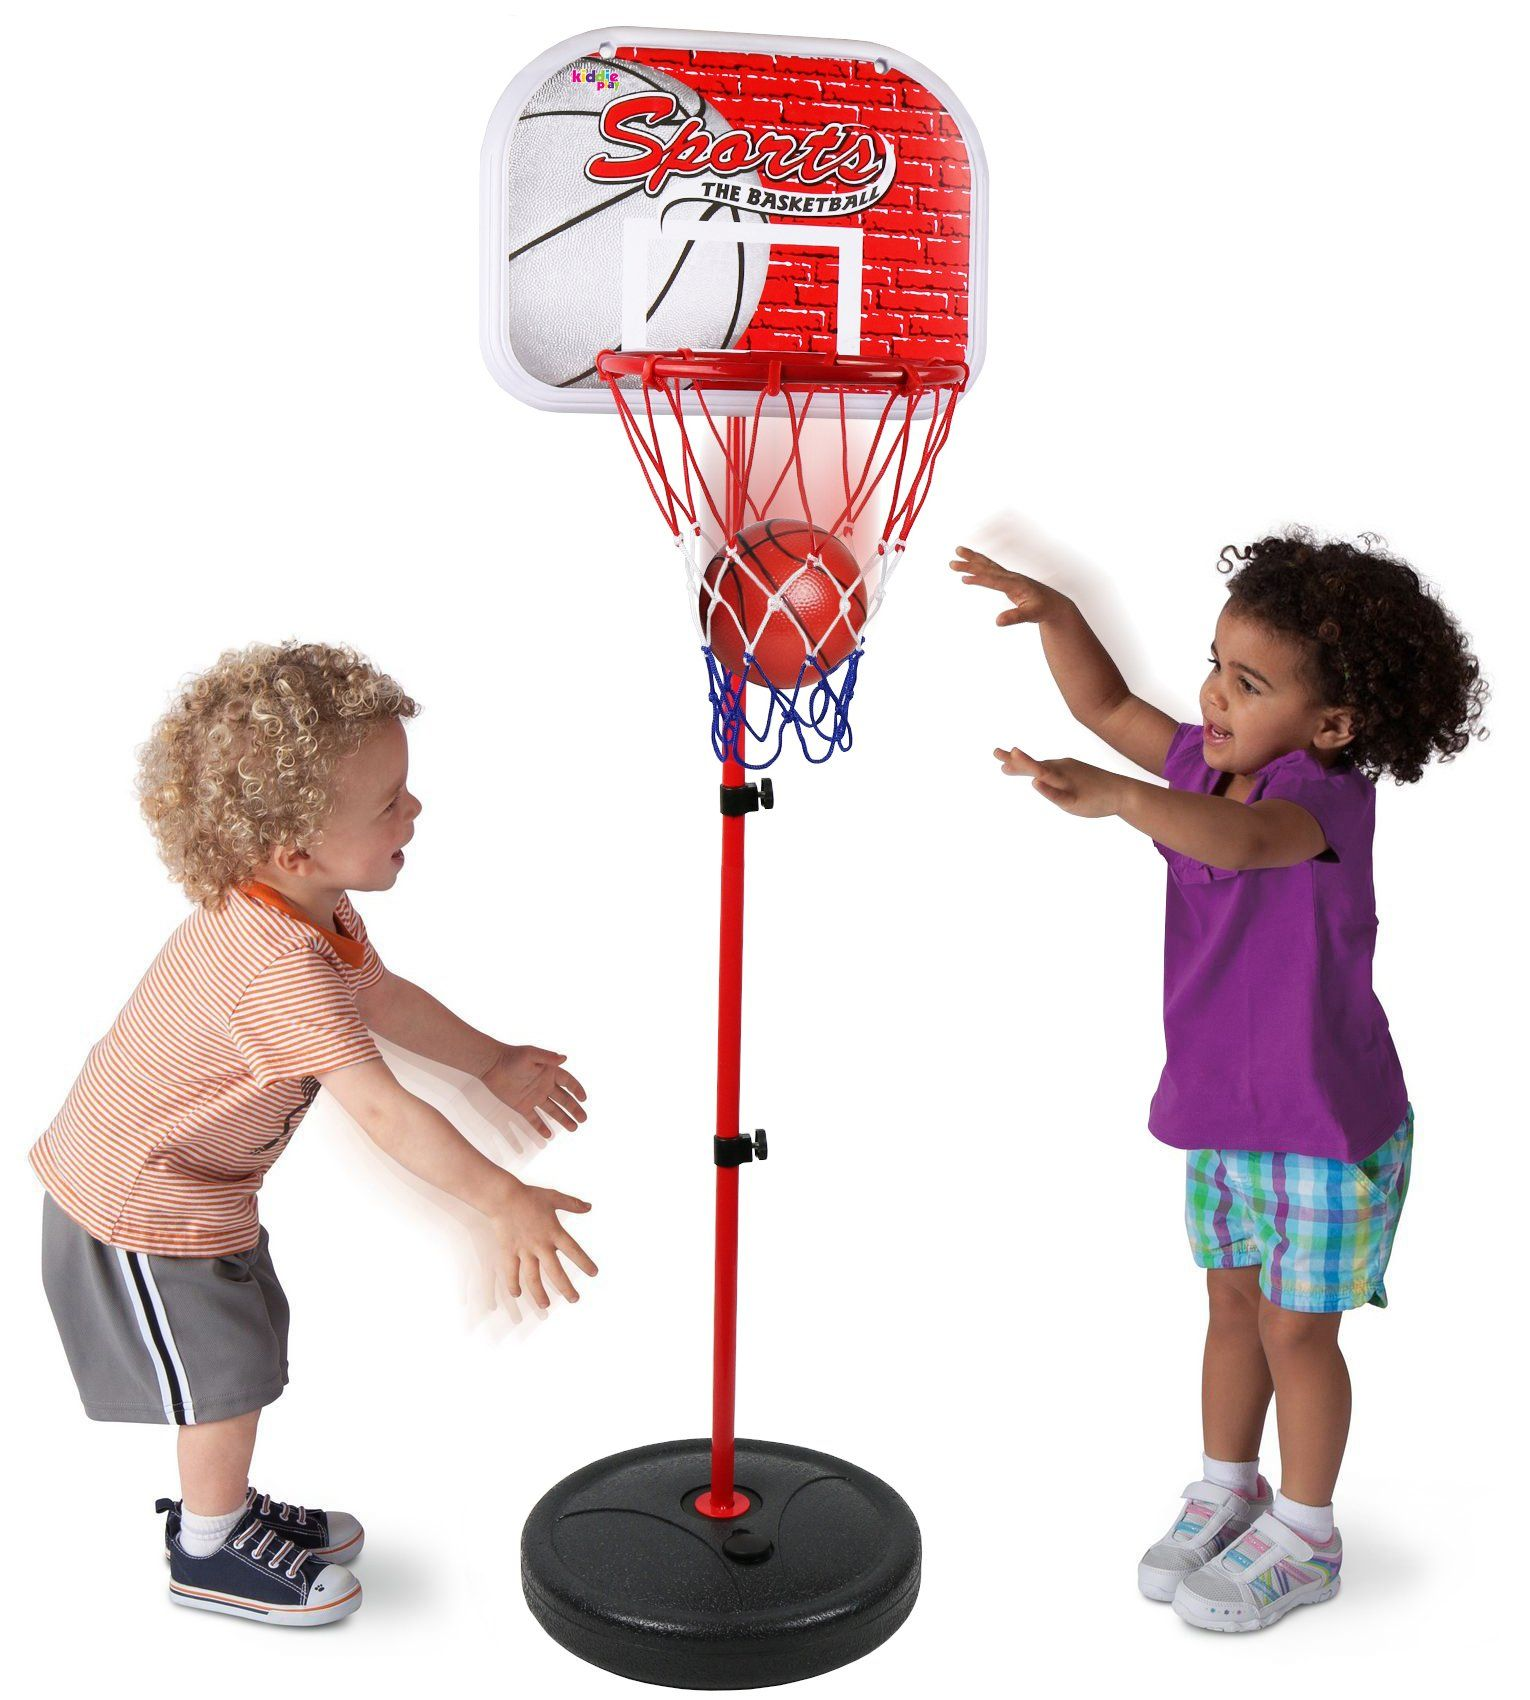 Kiddie Play Basketball Hoop Stand Toy Set For Kids Adjustable Height Up To 4 Ft Basketball Hoop Adjusts To Basketball Hoop Basketball Games For Kids Toy Sets